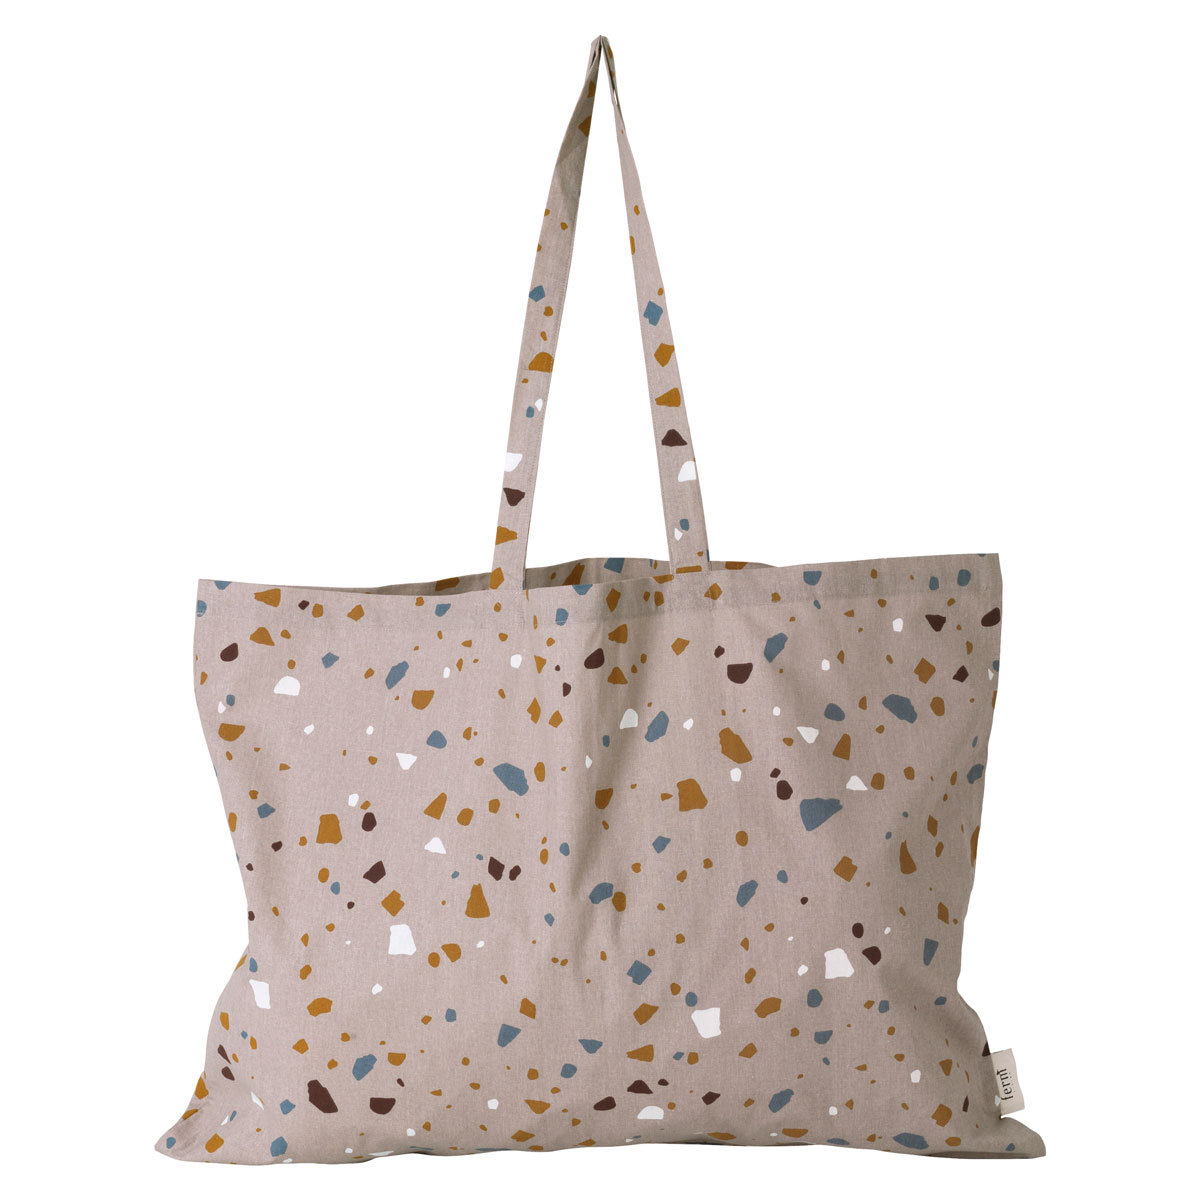 ferm living tote bag terrazzo rose xl bagagerie enfant ferm living sur l 39 armoire de b b. Black Bedroom Furniture Sets. Home Design Ideas